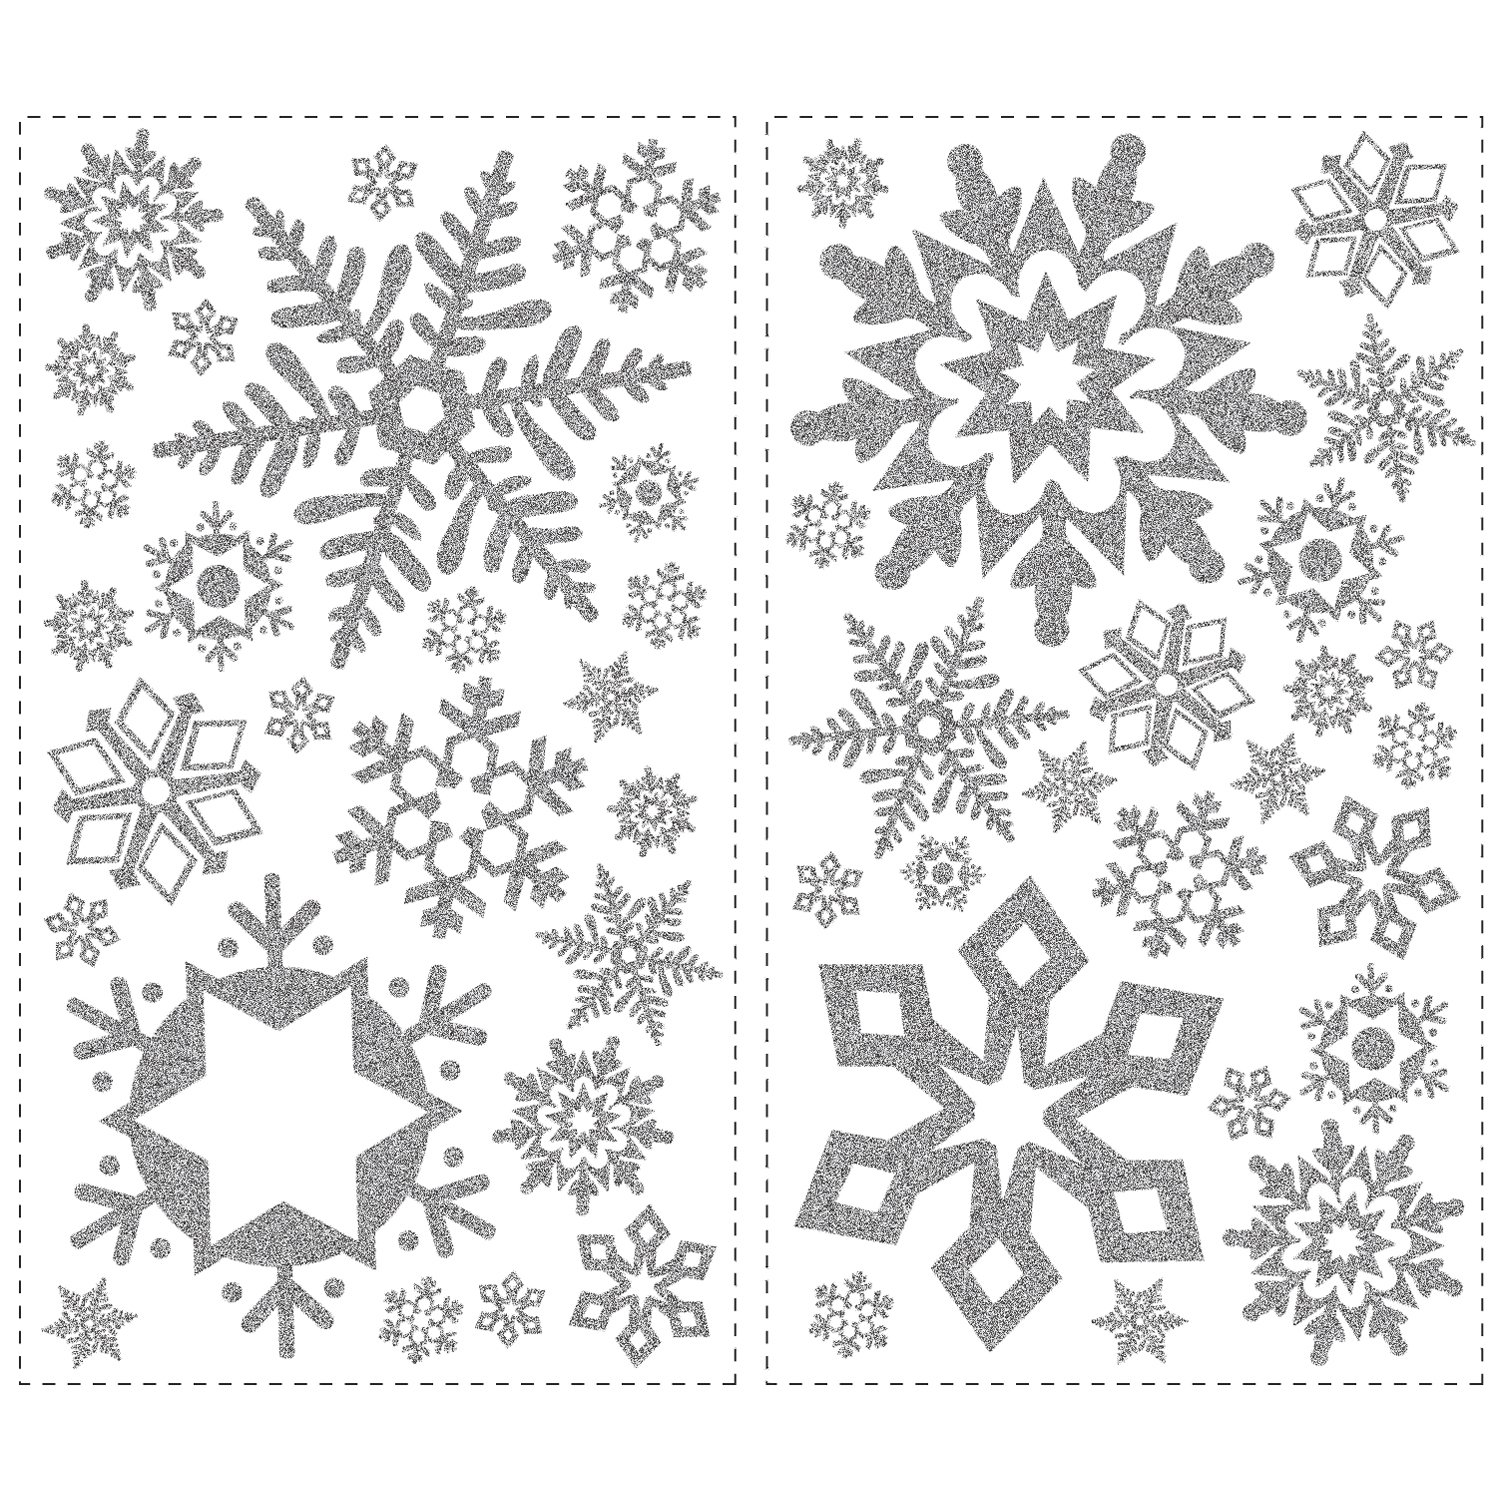 High Quality RoomMates RMK1413SCS Glitter Snowflakes Peel U0026 Stick Wall Decals, 47 Count    Decorative Wall Appliques   Amazon.com